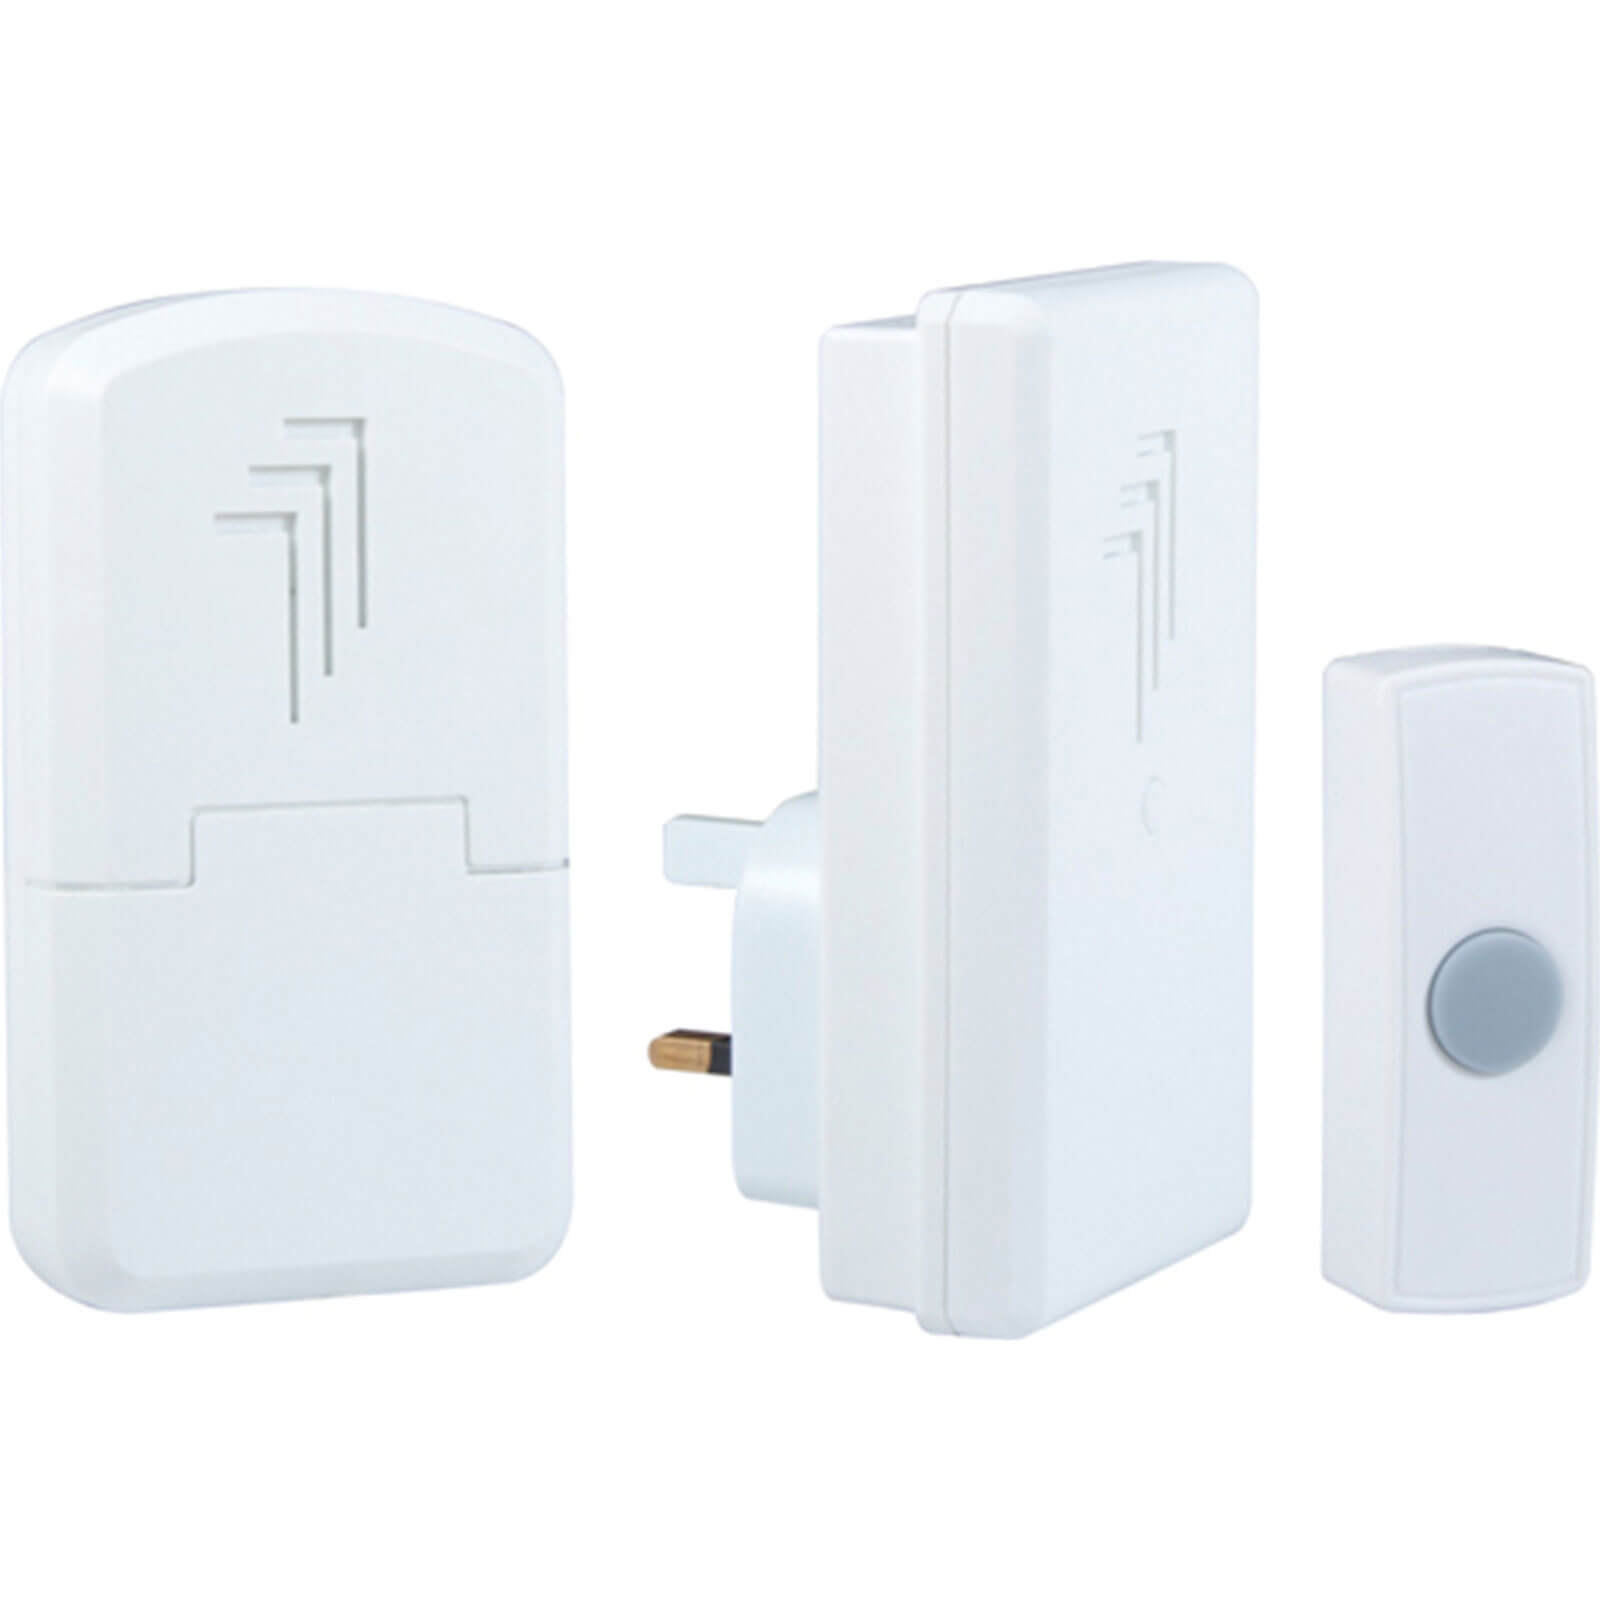 Byron DB312 Wireless Portable or Plug In Door Chime Kit